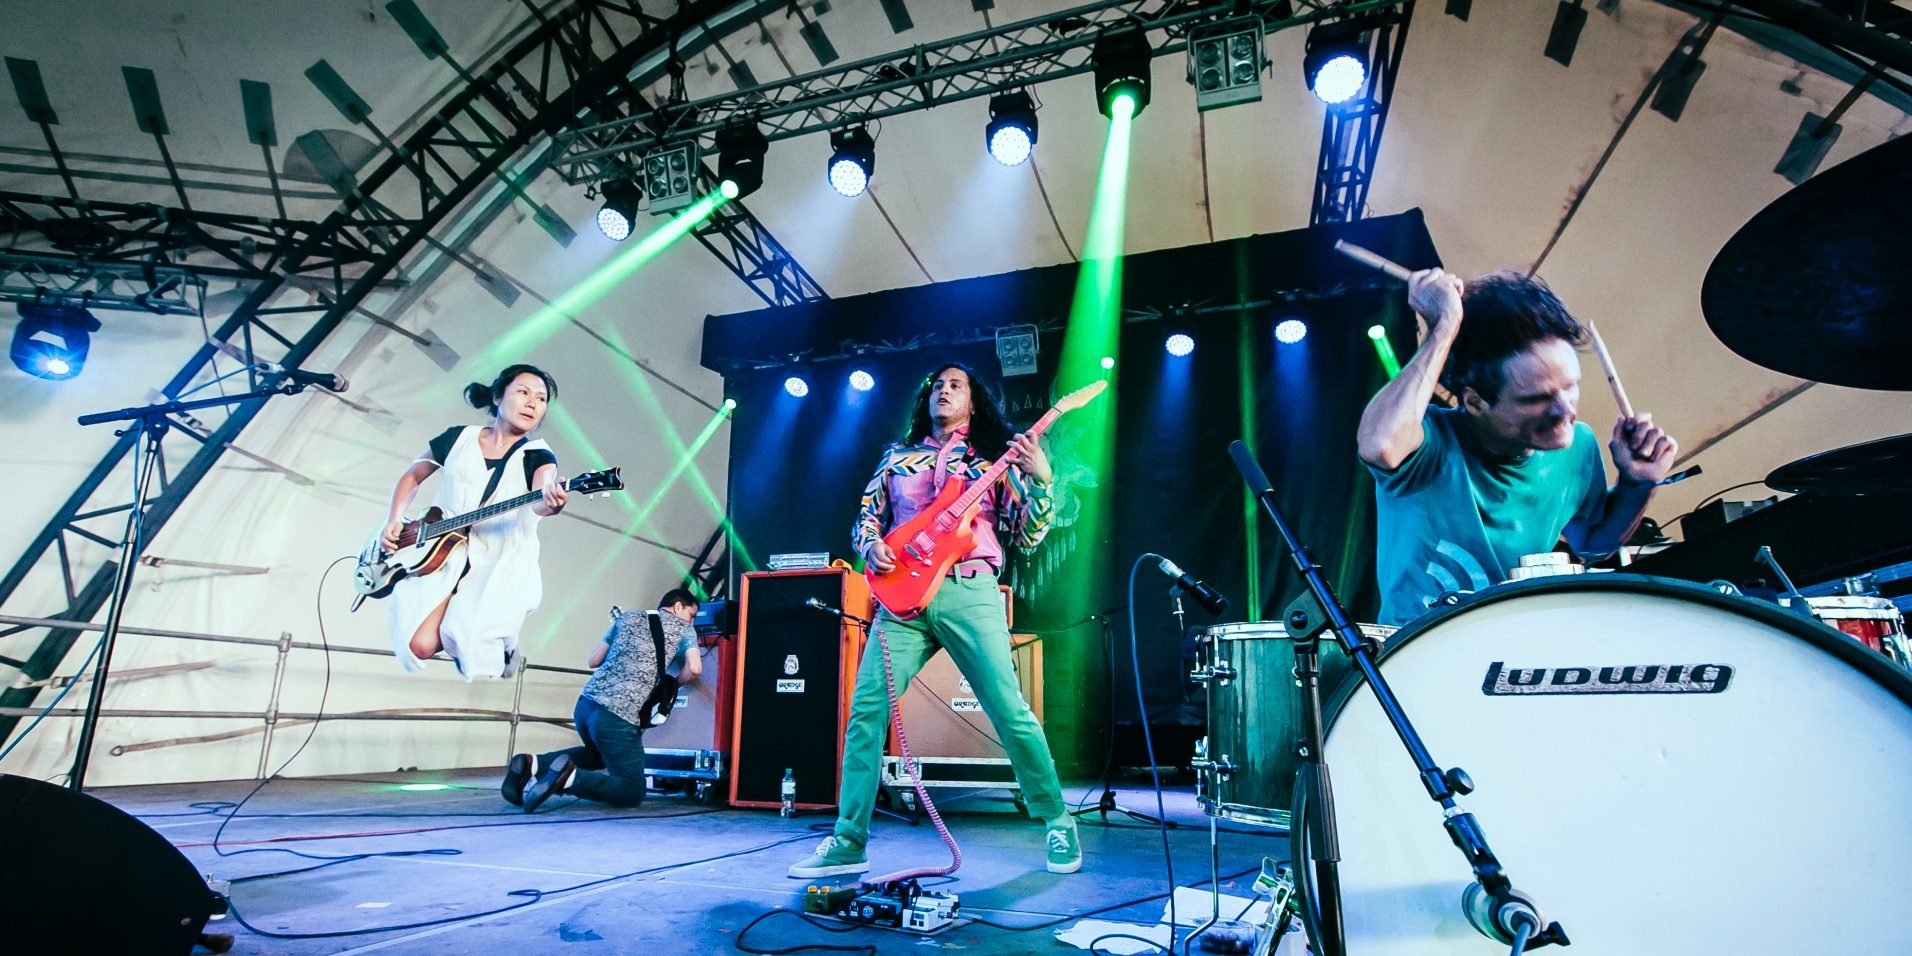 """Deerhoof was never capable of using a formula"": An interview with Deerhoof's Greg Saunier"